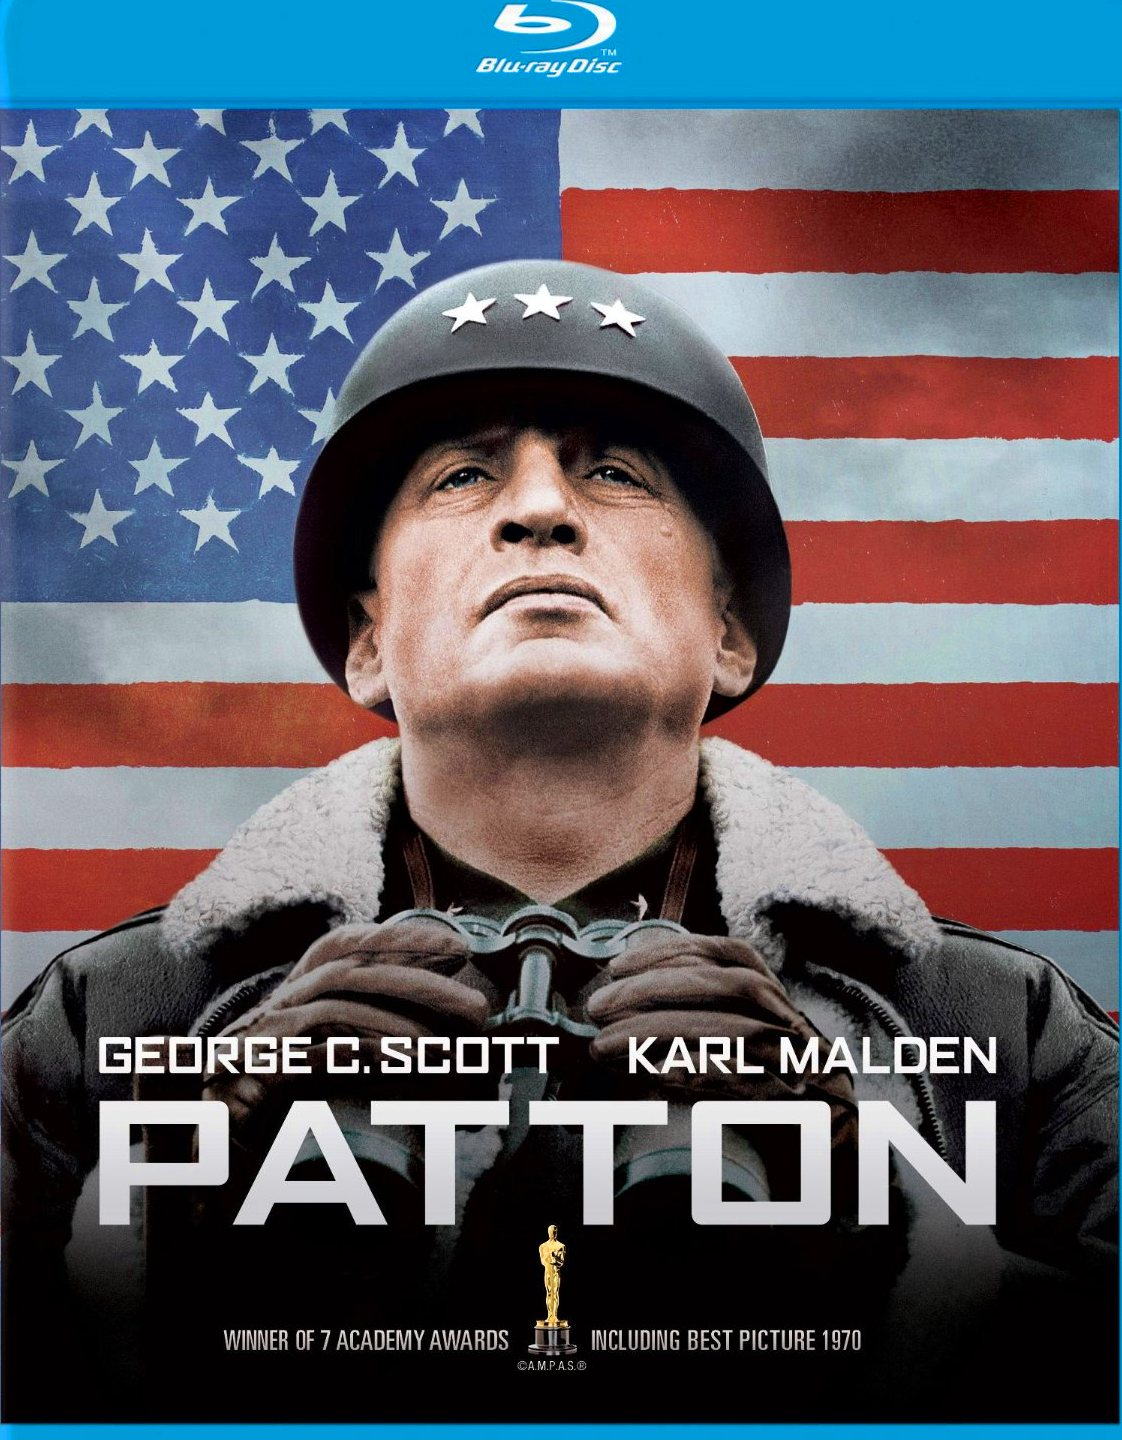 the film patton essay The audio essay is not by a filmmaker, but charles m province, the founder and president of the george s patton jr museum his background on the man is impressive, but one misses a filmmaker's touch to the essay, or even the recollections of scott himself.